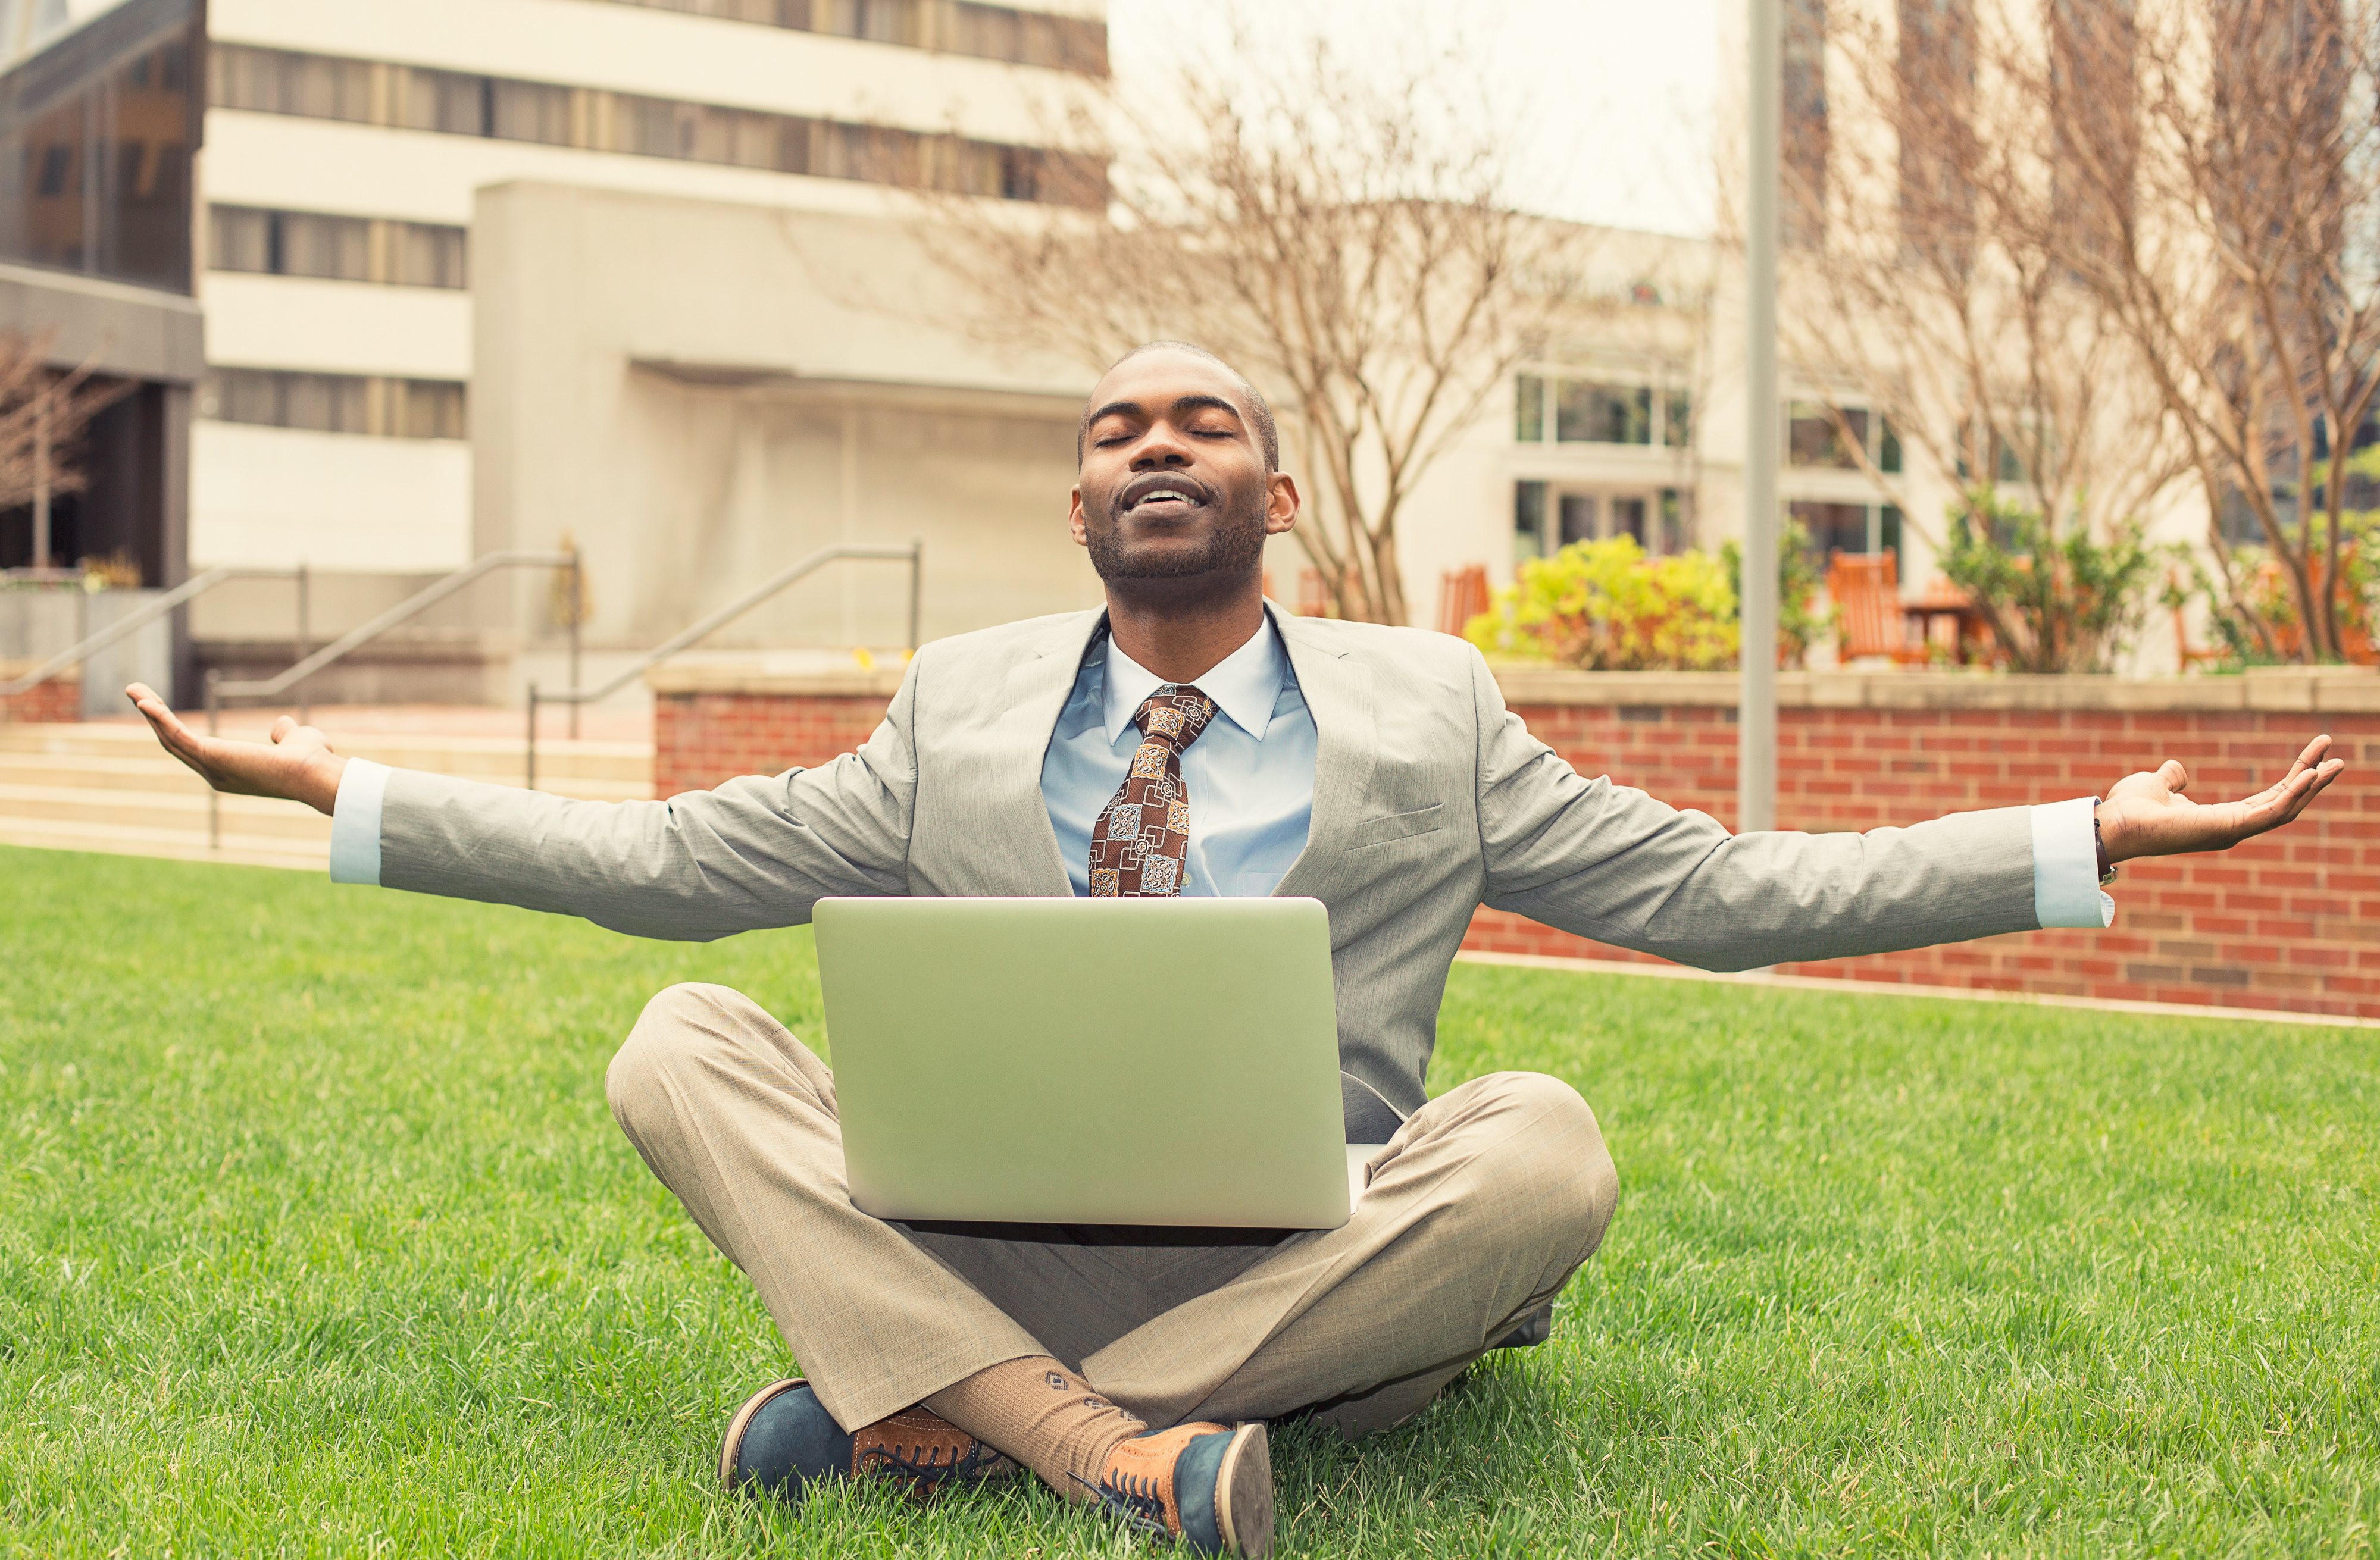 Young businessman with computer relaxing outside corporate office sitting on green grass in mediation mode